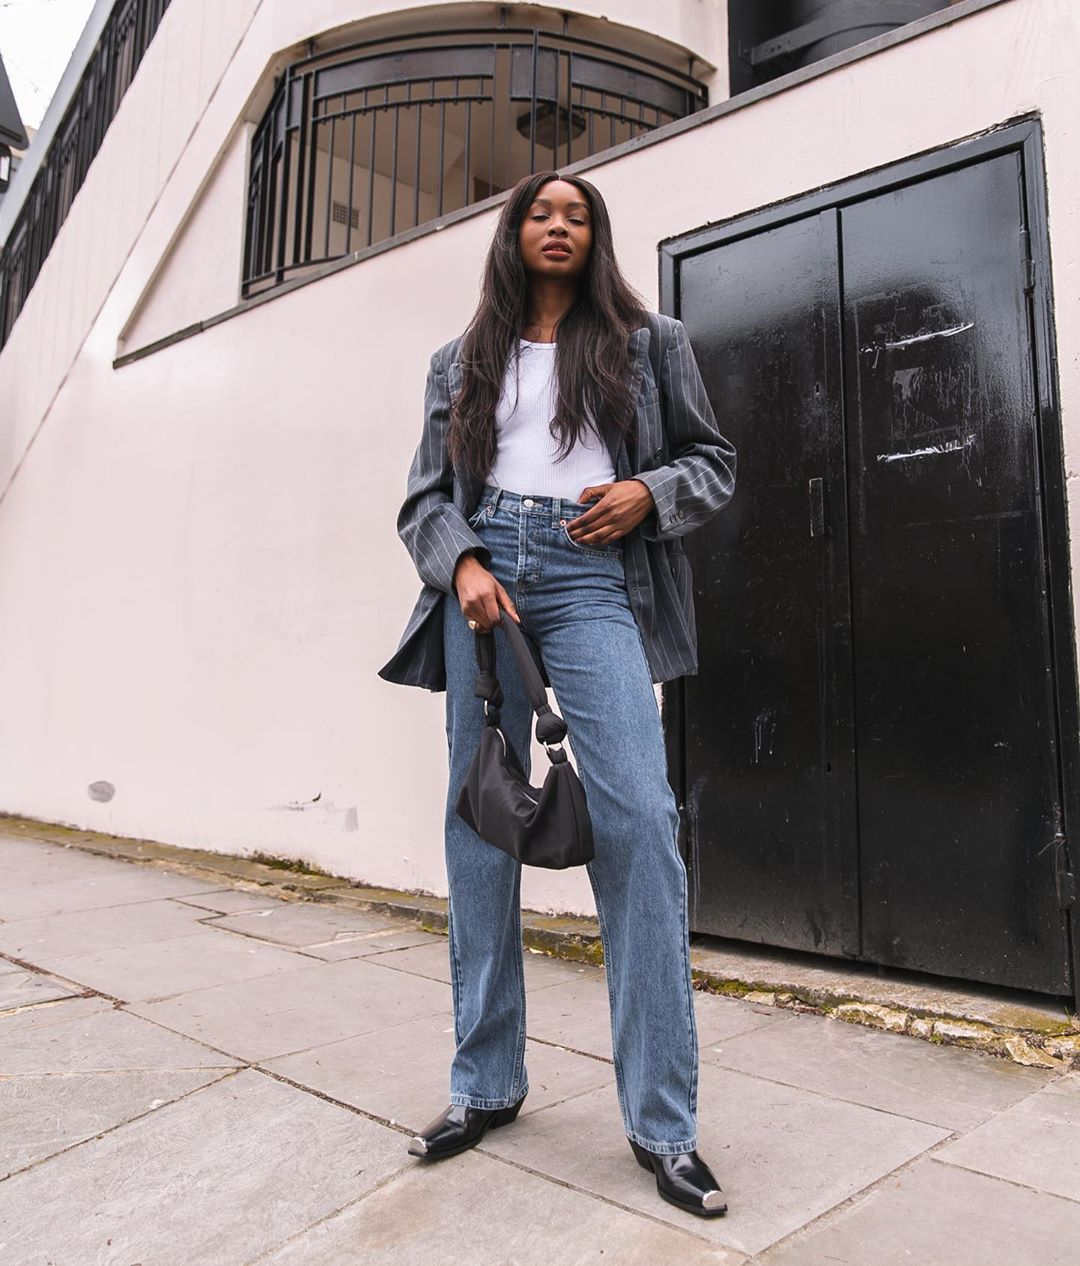 Sorry, Skinny Jeans—This Denim Trend Is Going to Be Huge This Autumn